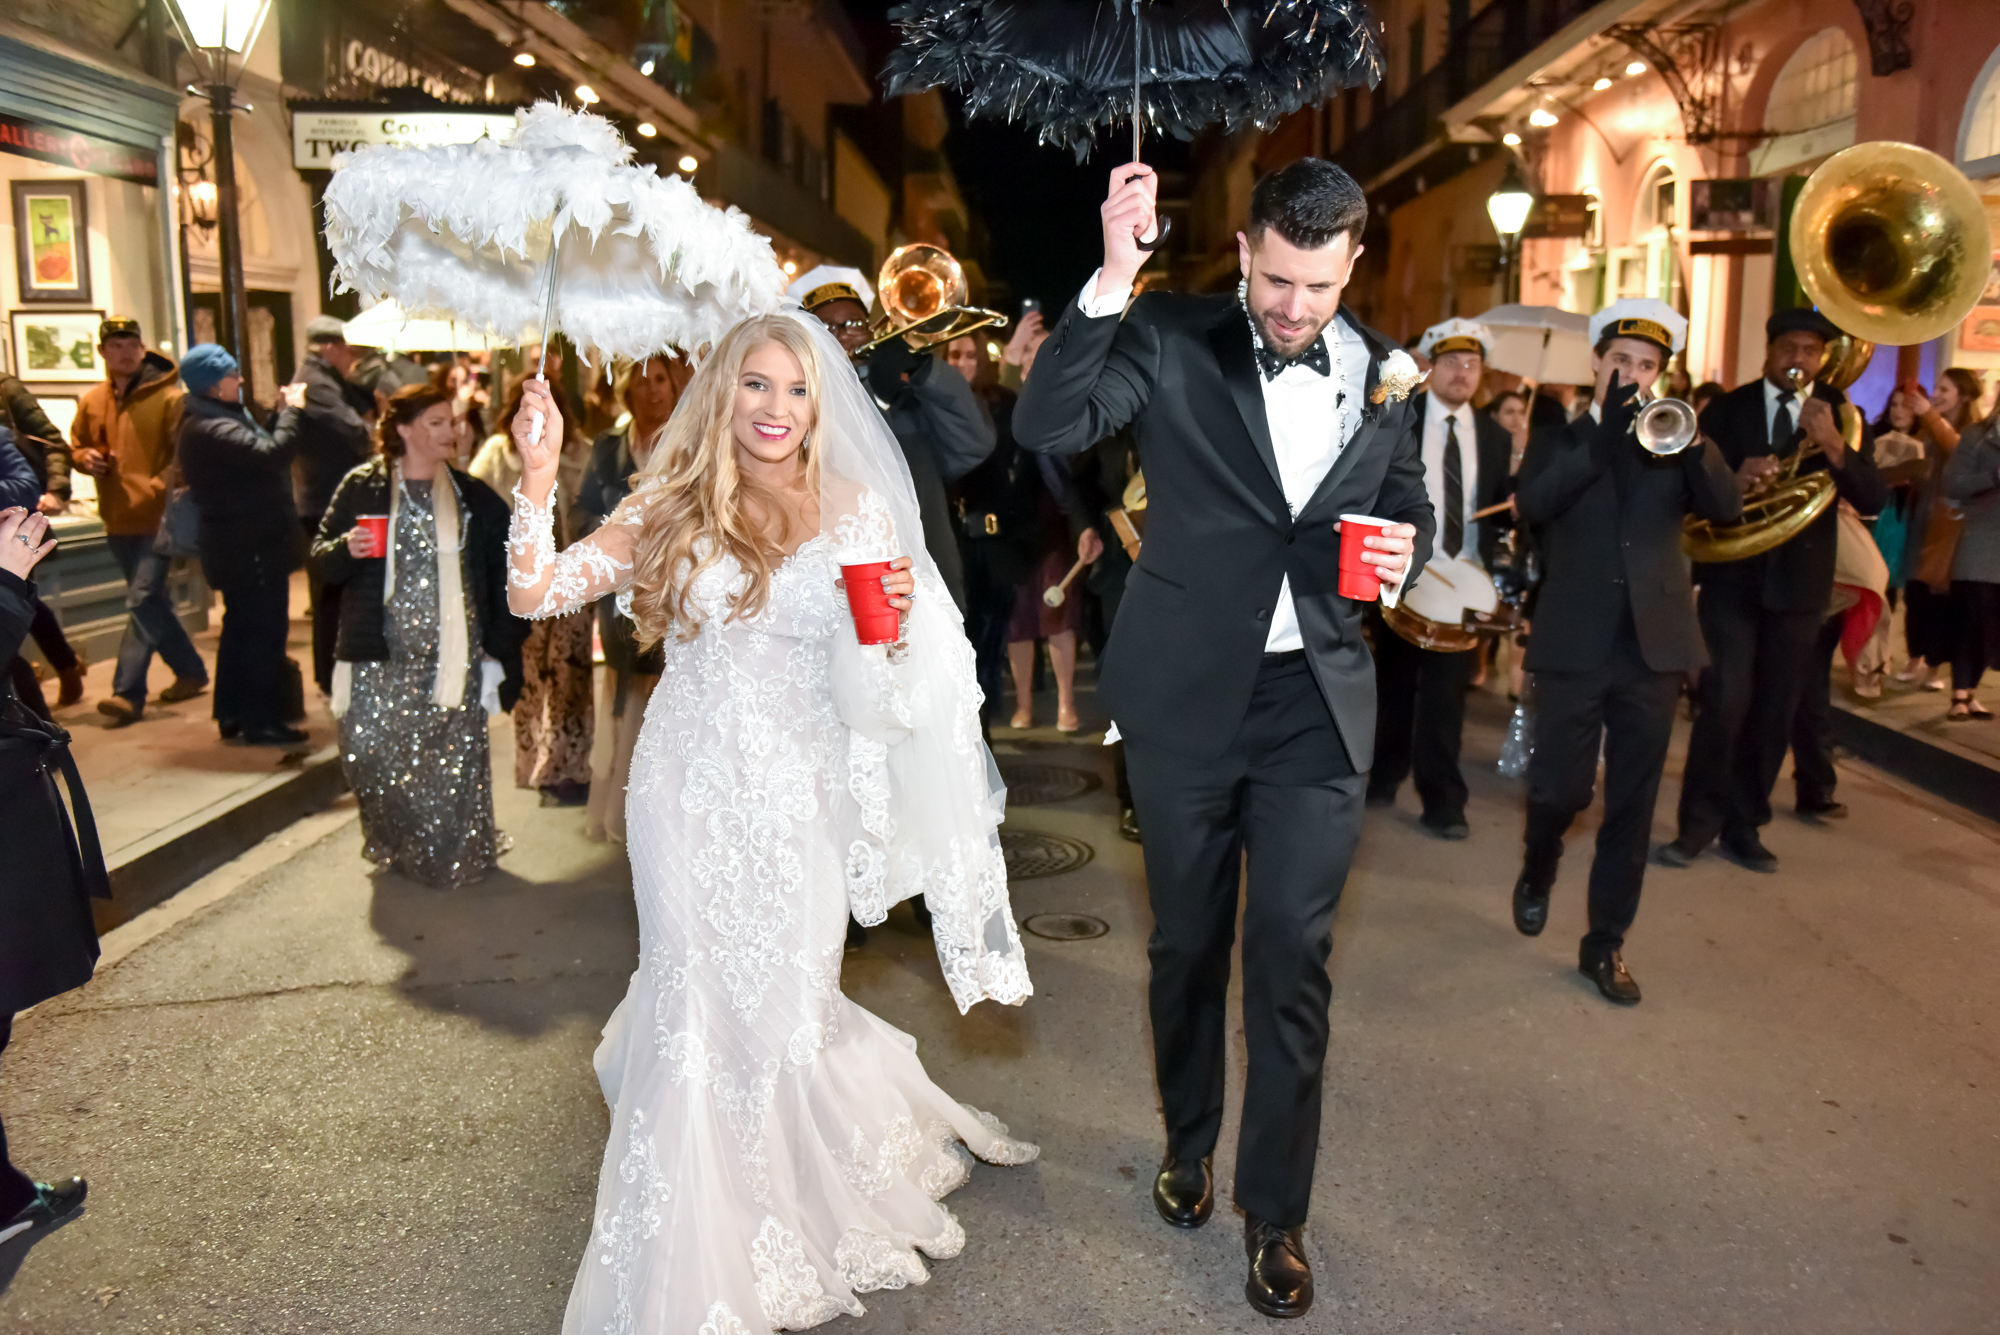 New Orleans wedding traditions, umbrellas, second line